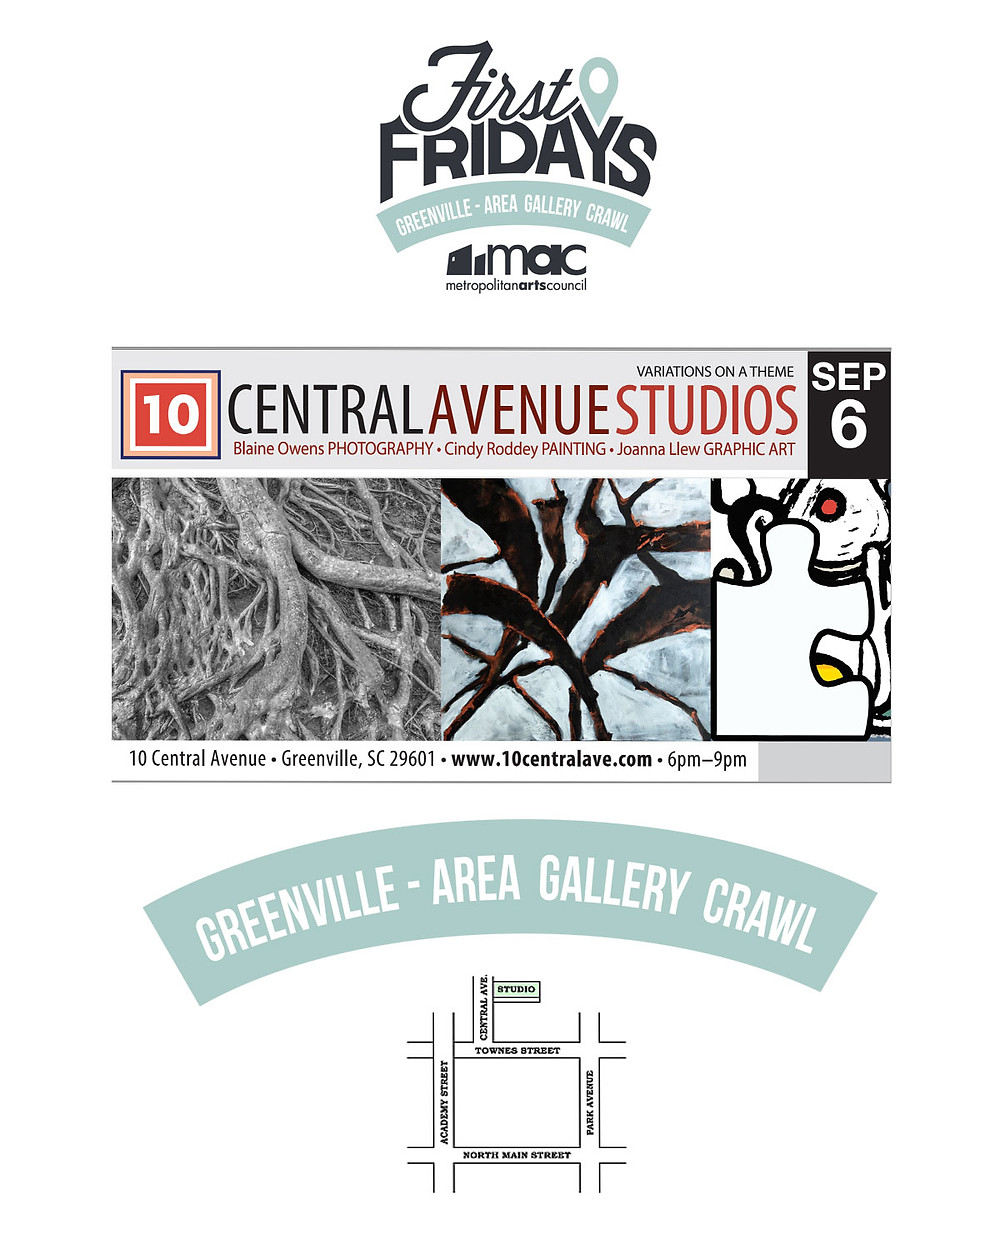 10 Central Avenue First Friday Sept 6, 2019